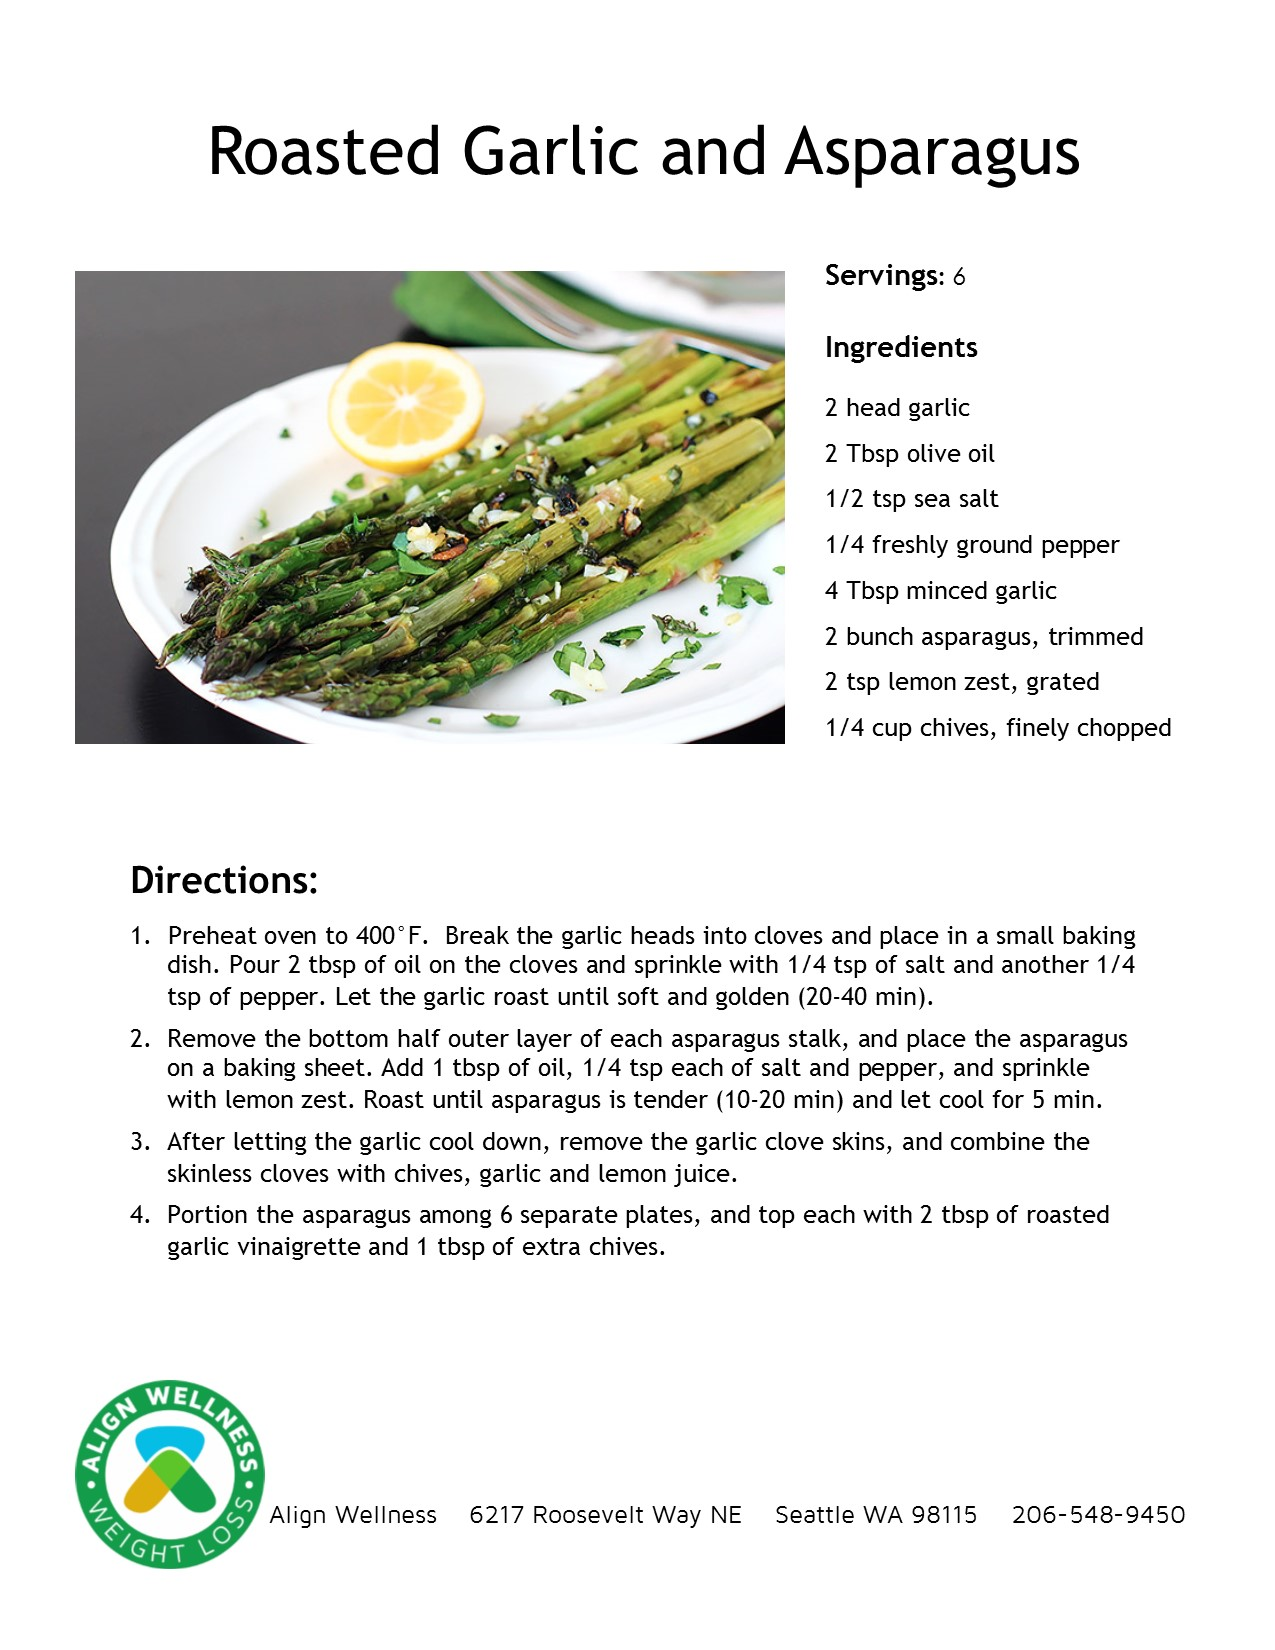 Roasted Garlic and Asparagus Ideal Protein Recipe